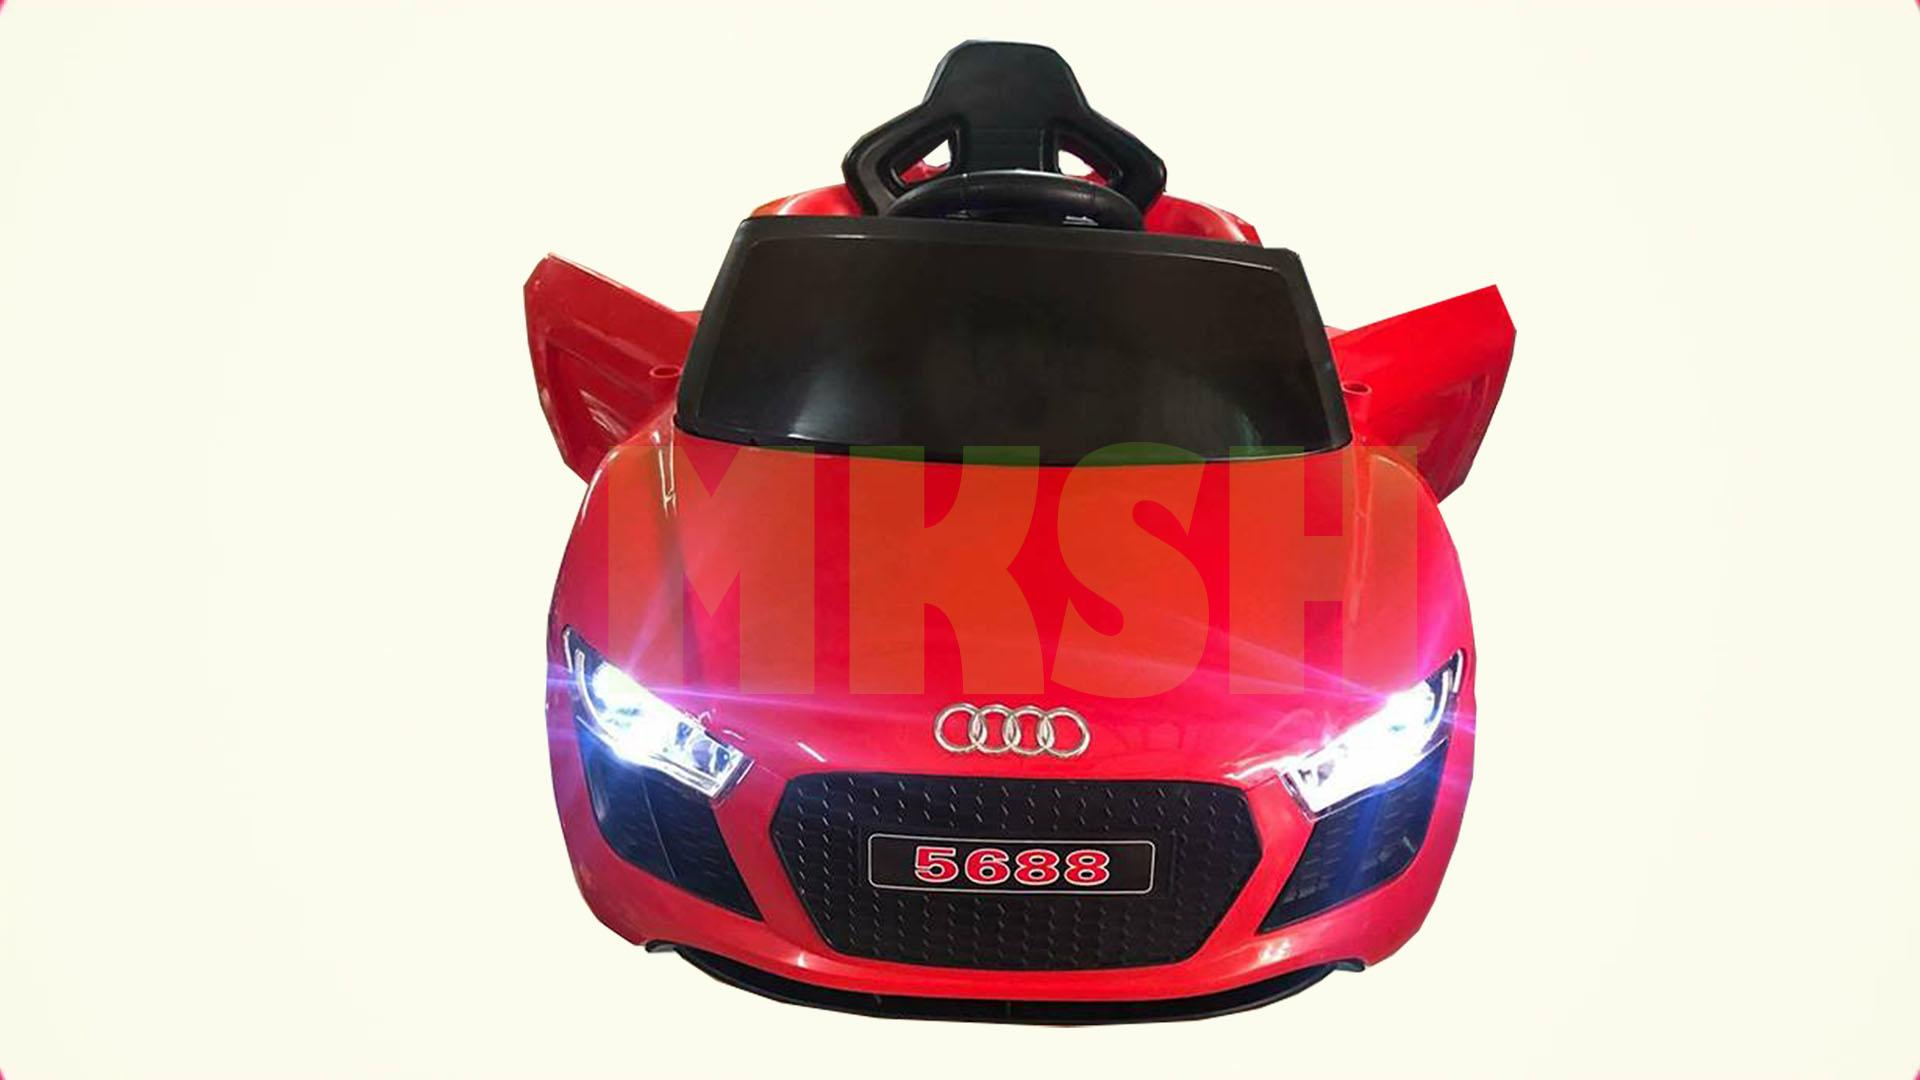 Ride On Toys For Sale Kids Ride Ons Online Brands Prices - Audi 6v ride toy cars